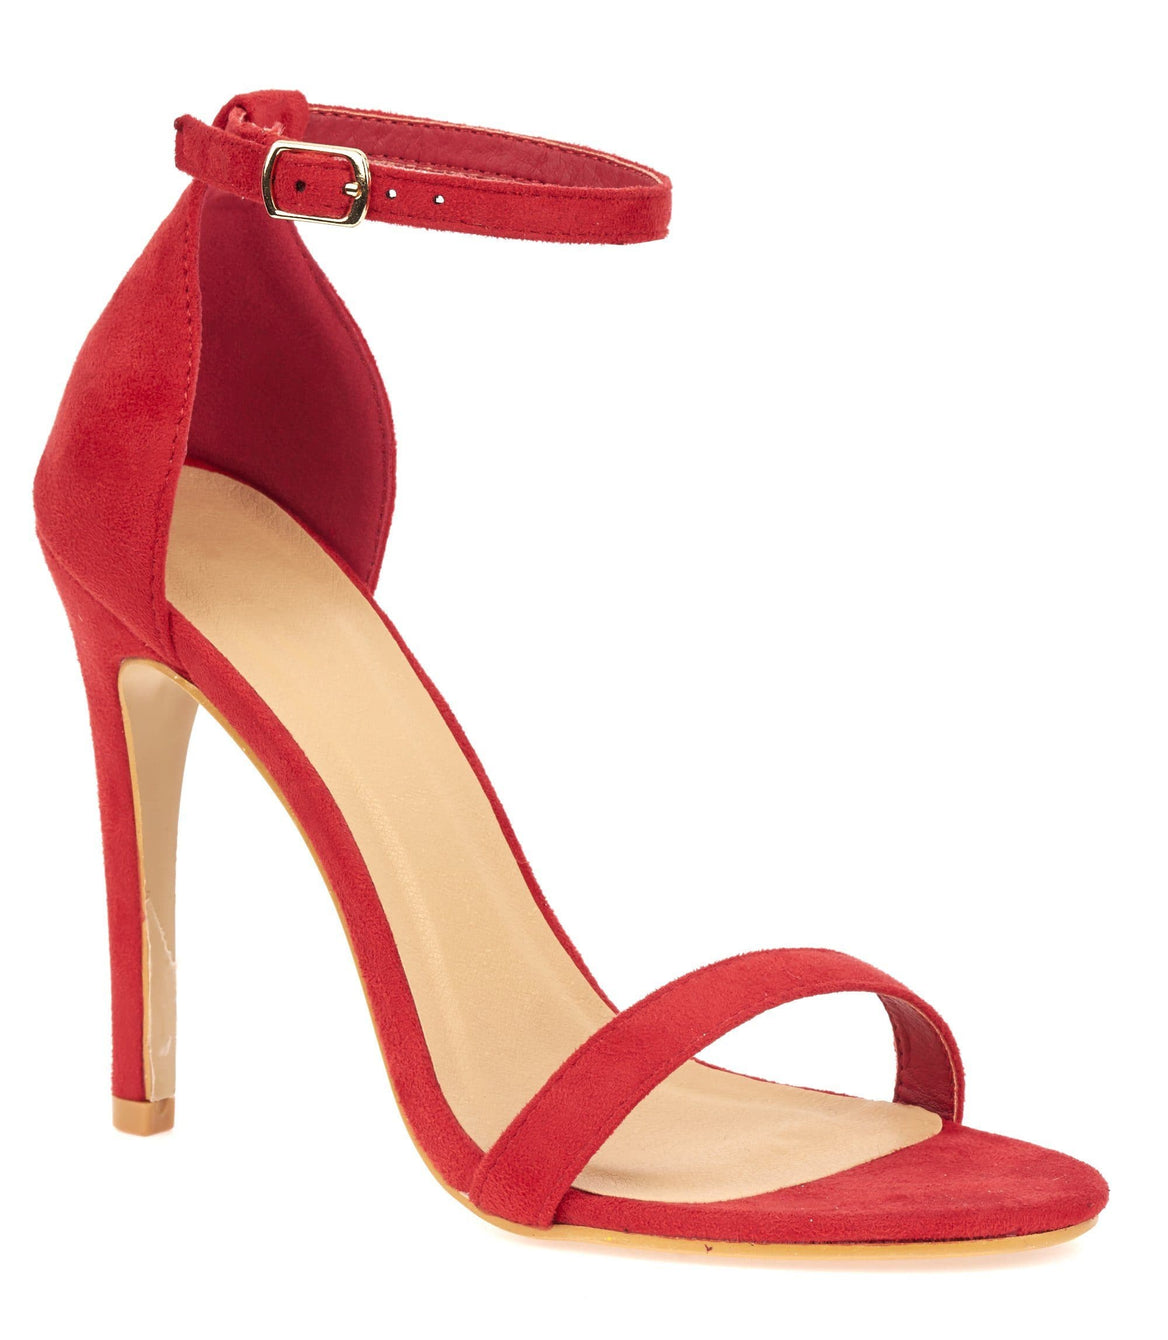 Arron Anklestrap Stilleto Sandal in Red Suede